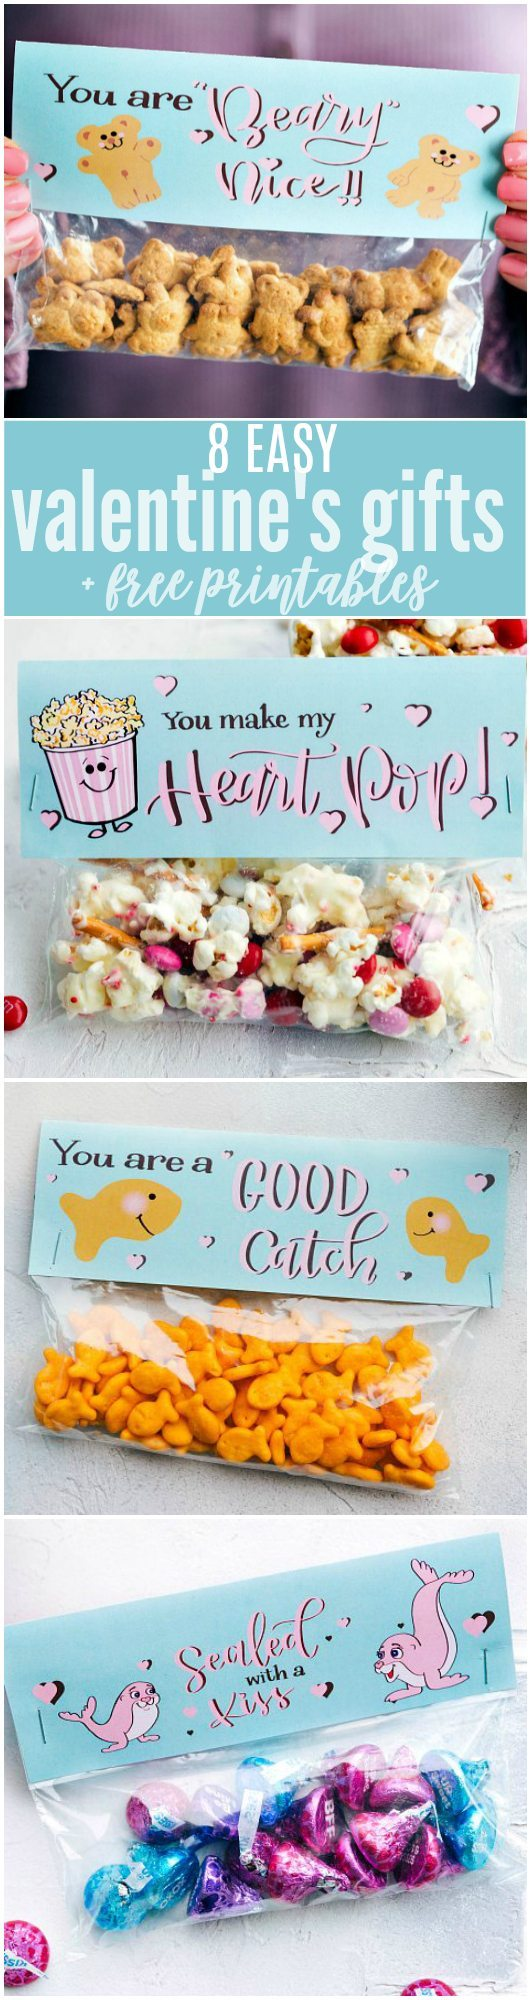 The CUTEST Valentine's Day Gifts -- so easy to make and FREE PRINTABLE bag toppers! via chelseasmessyapron.com   #valentines #bagtopper #easy #quick #free #printable #bag #topper #treat #dessert #smore #beary #nice #treat #candy #snack